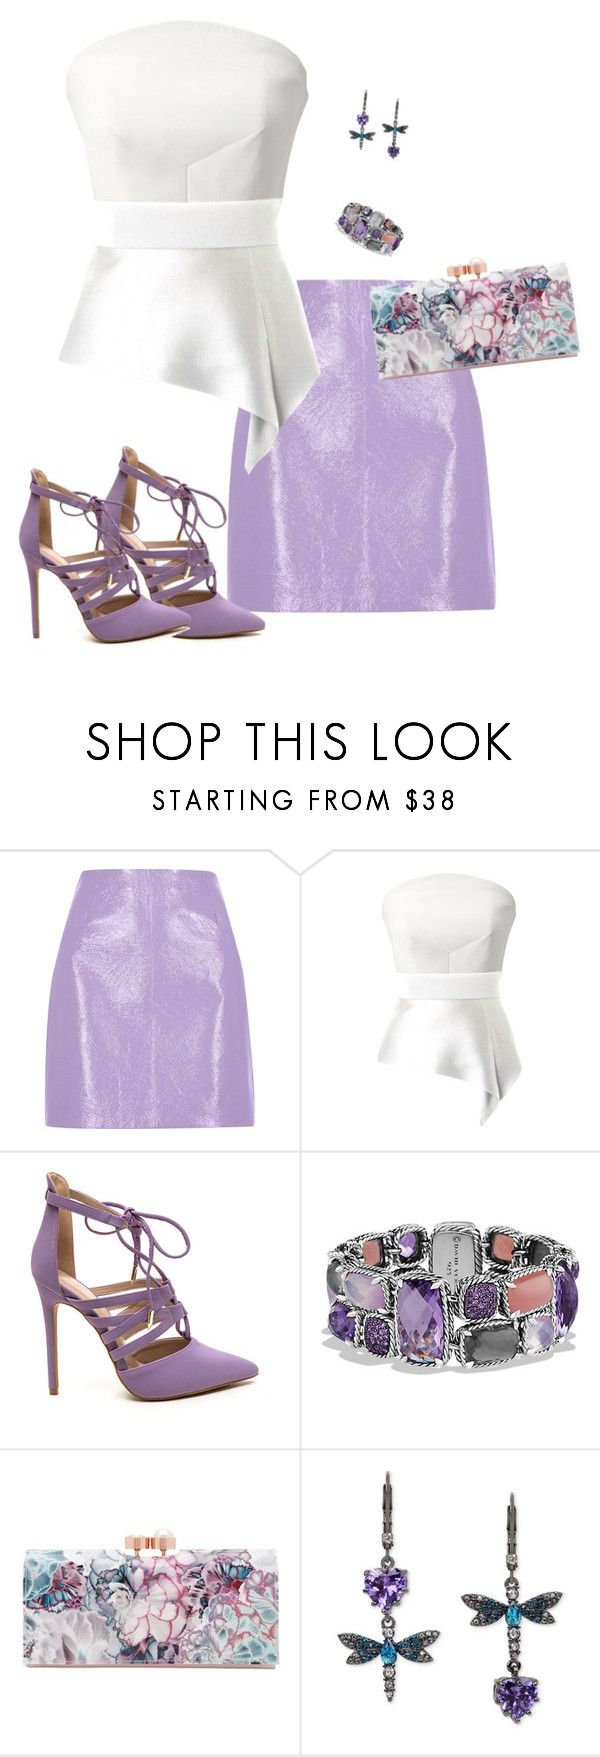 """""""So Hot in Here"""" by toots2271 ❤ liked on Polyvore featuring River Island, Roland Mouret, David Yurman, Ted Baker and Betsey Johnson"""